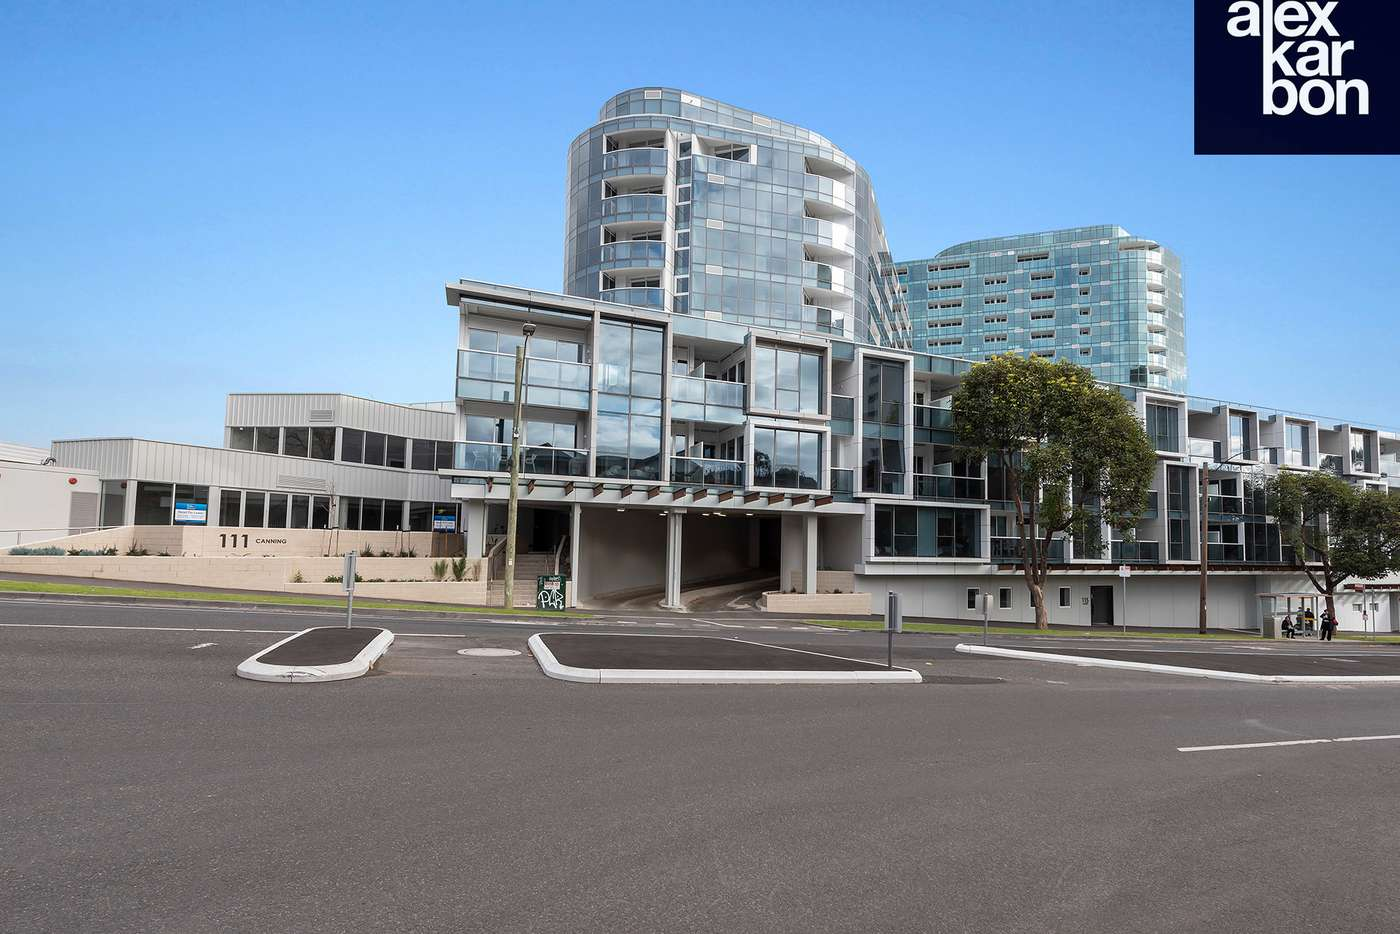 Main view of Homely apartment listing, 206/111 Canning Street, North Melbourne VIC 3051